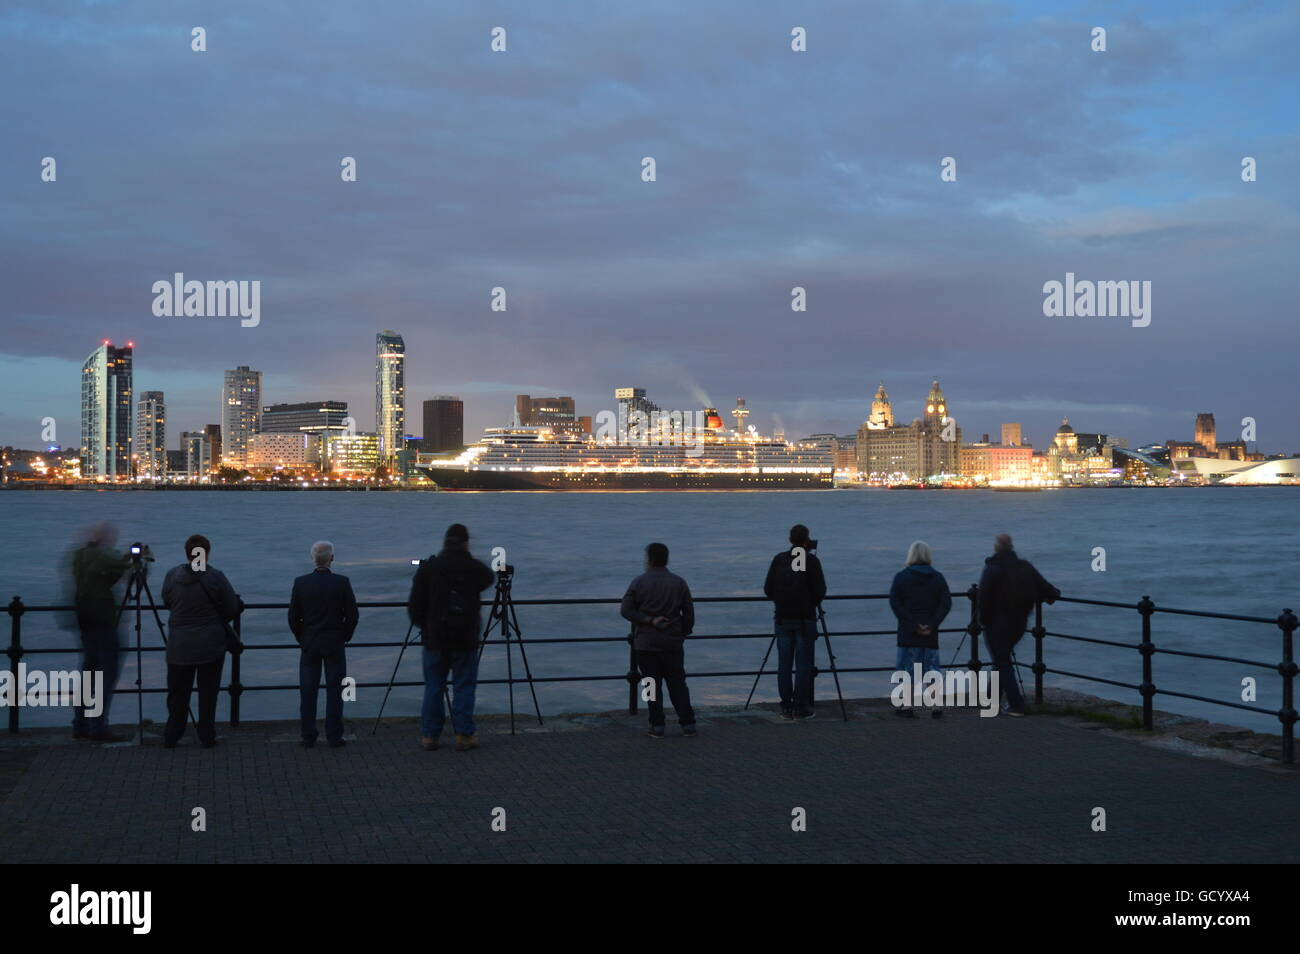 Queen Elizabeth cruise ship berthed in Liverpool at dusk, viewed from Seacombe,Wallasey on the Wirral. - Stock Image